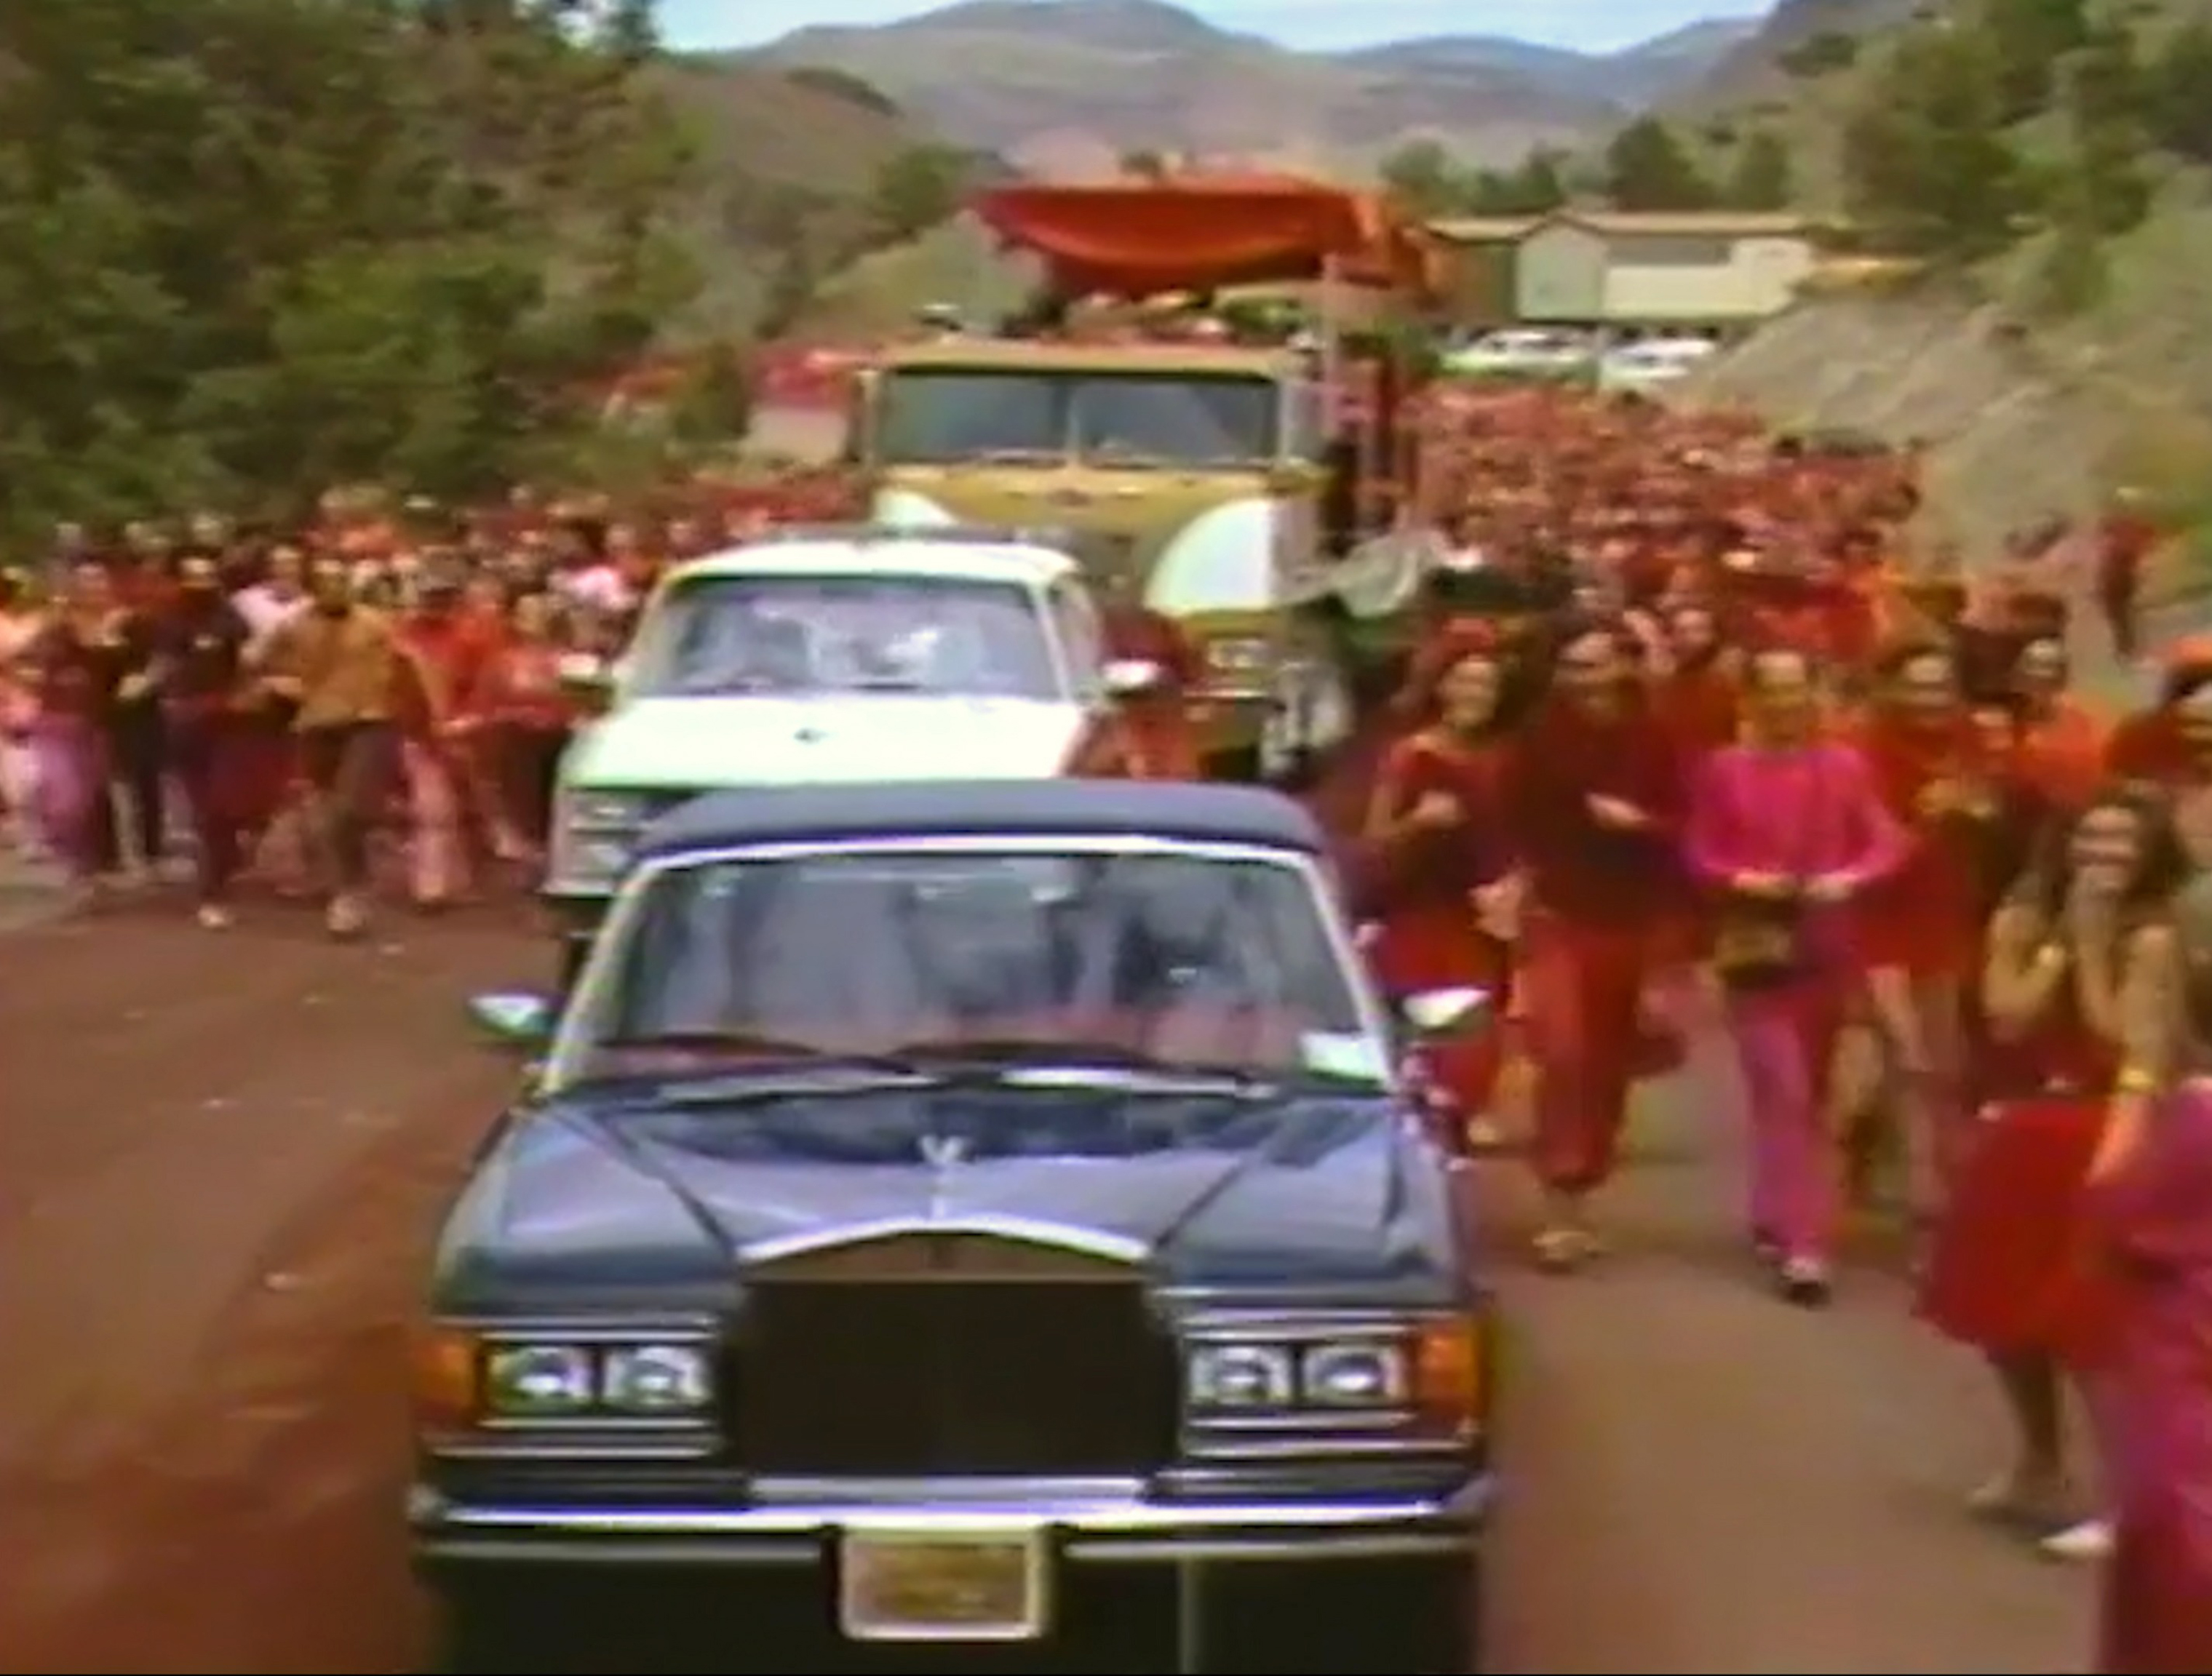 Scene from Wild Wild Country